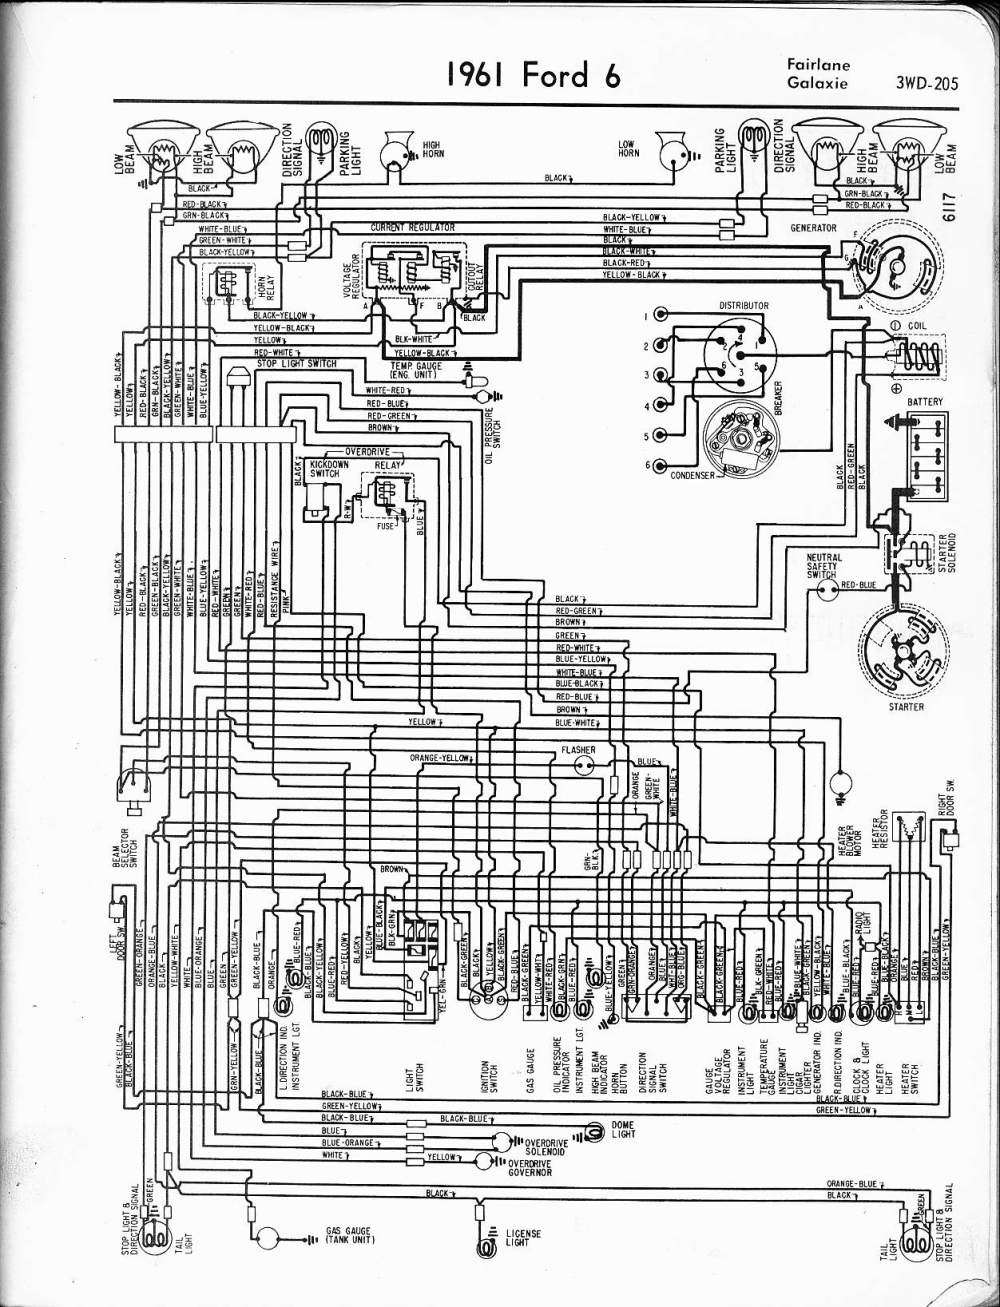 medium resolution of 1965 ford f100 ignition switch wiring diagram detailed schematics 1973 ford truck wiring diagram 1972 ford